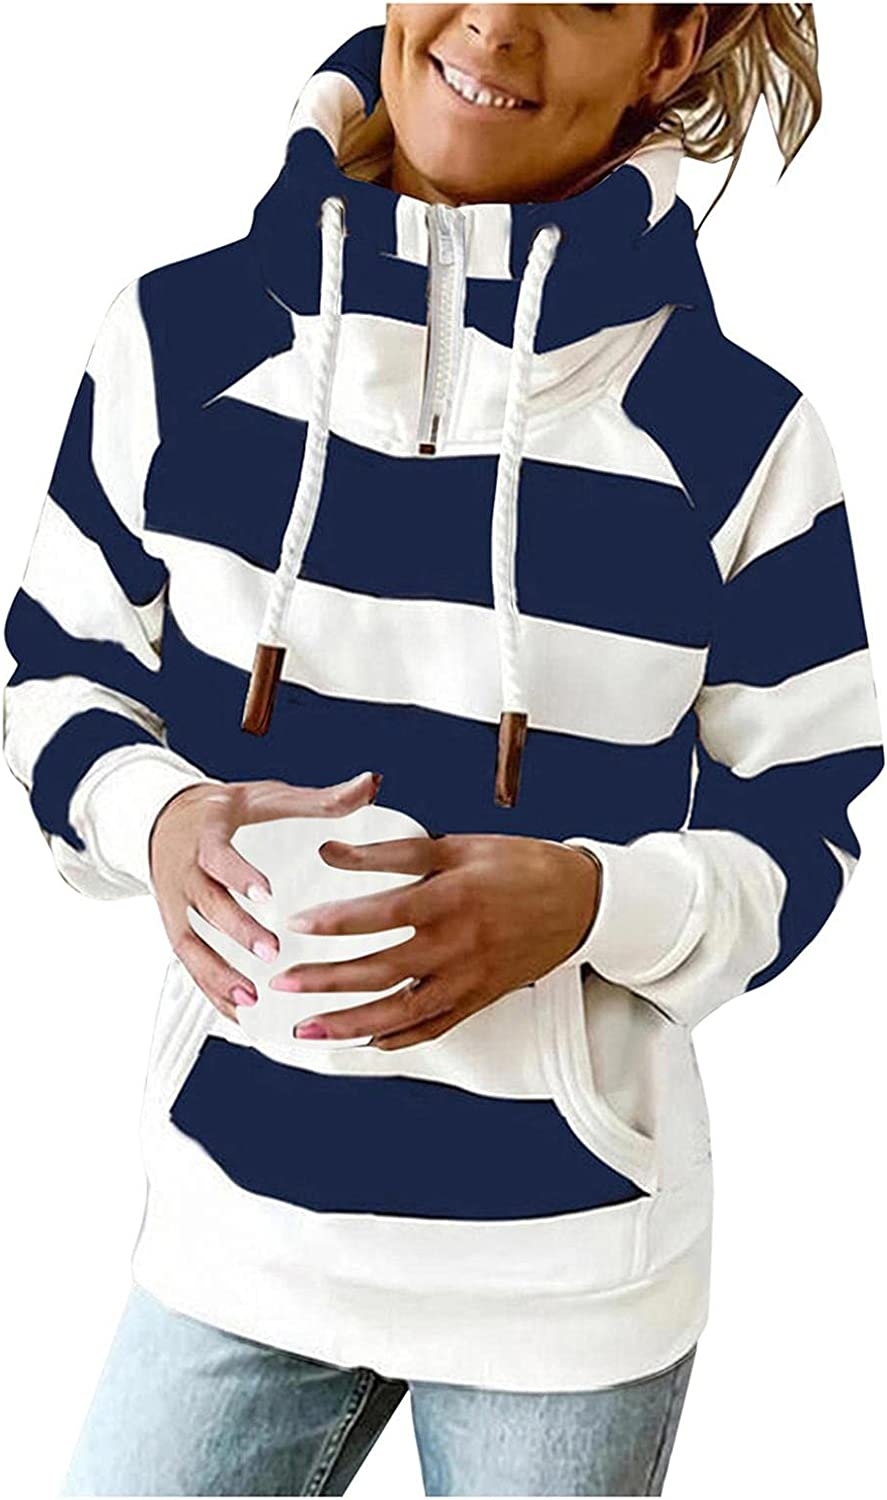 AODONG Hoodies for Women Fashion Dressy Casual Loose Long Sleeve Pullover Sweatshirts Comfort Tops Blouses